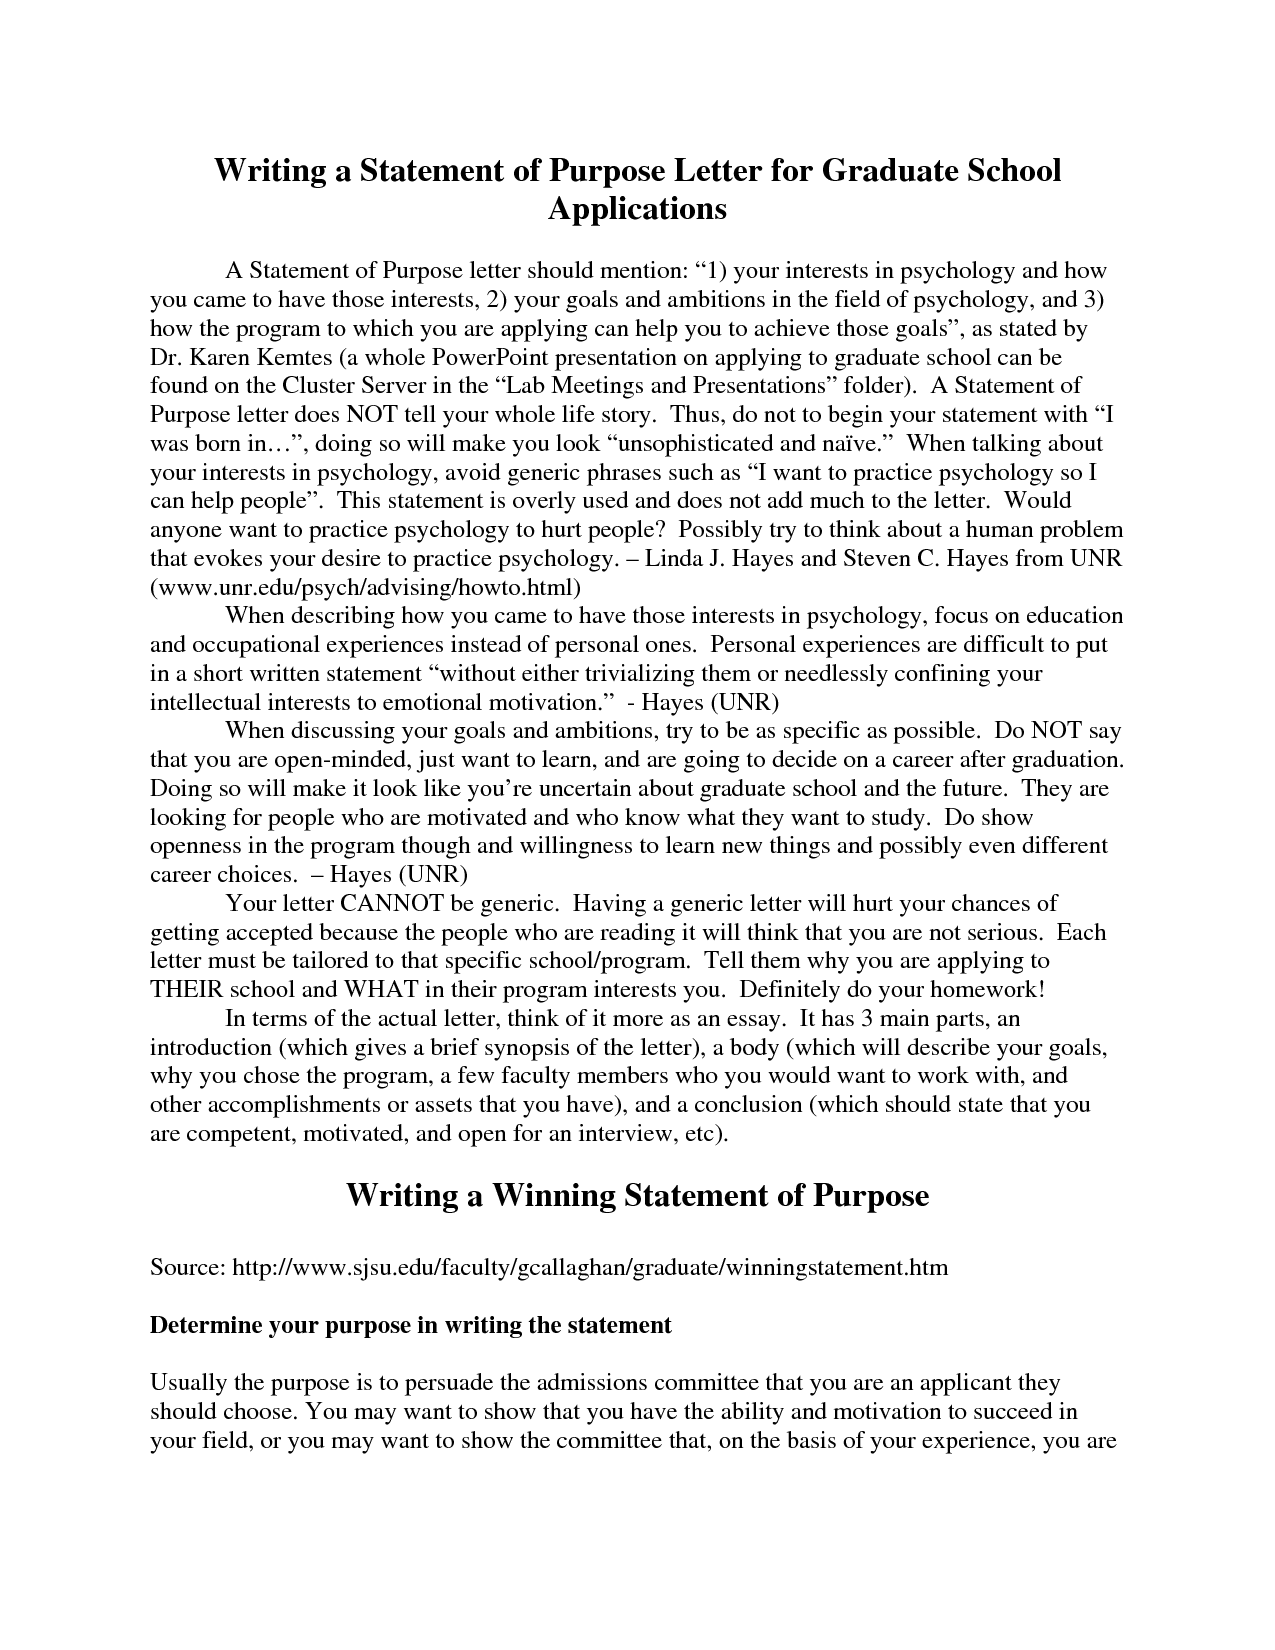 009 Statement Of Purpose Graduate School Sample Essays Personal Essay Examples High College Application Engineering Grad Template Zap Example Speech Pathology Social Top Education Full